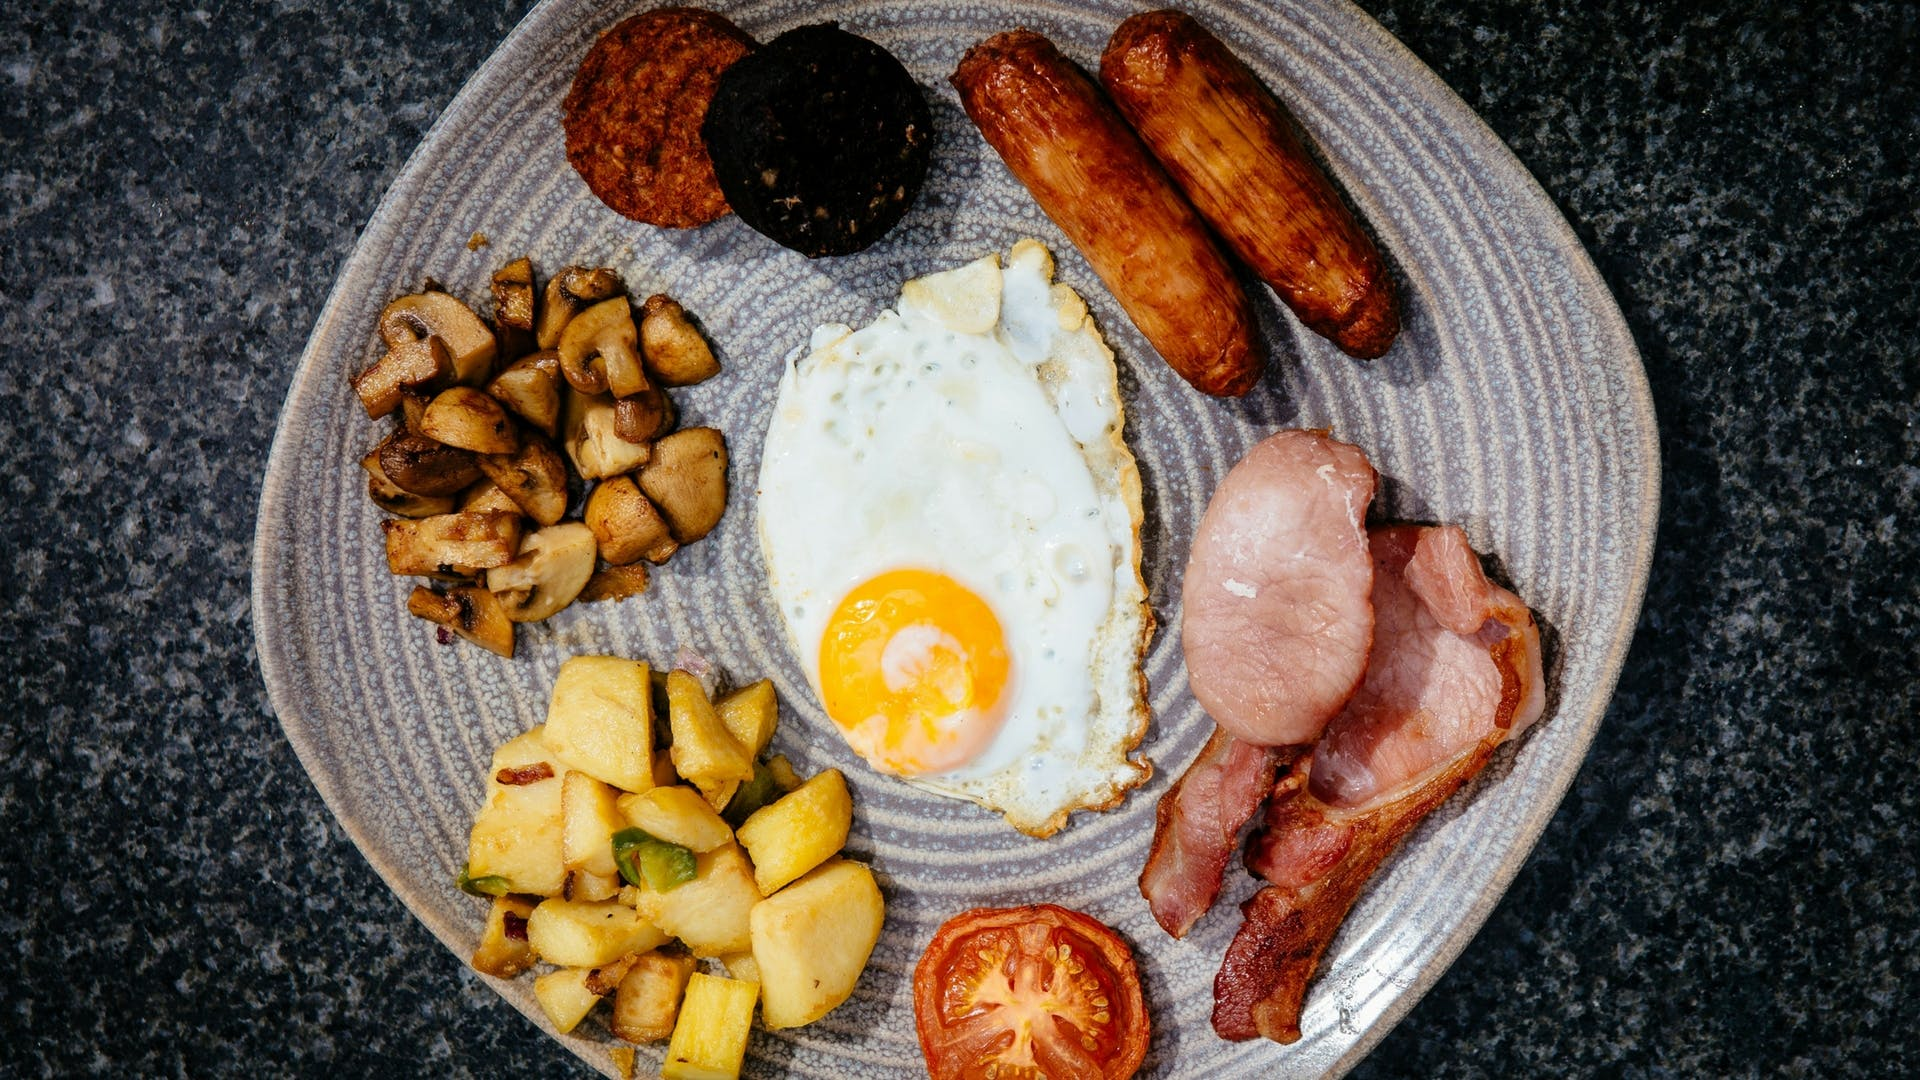 Full Irish Breakfast at Gleesons Restaurant & Rooms, Roscommon